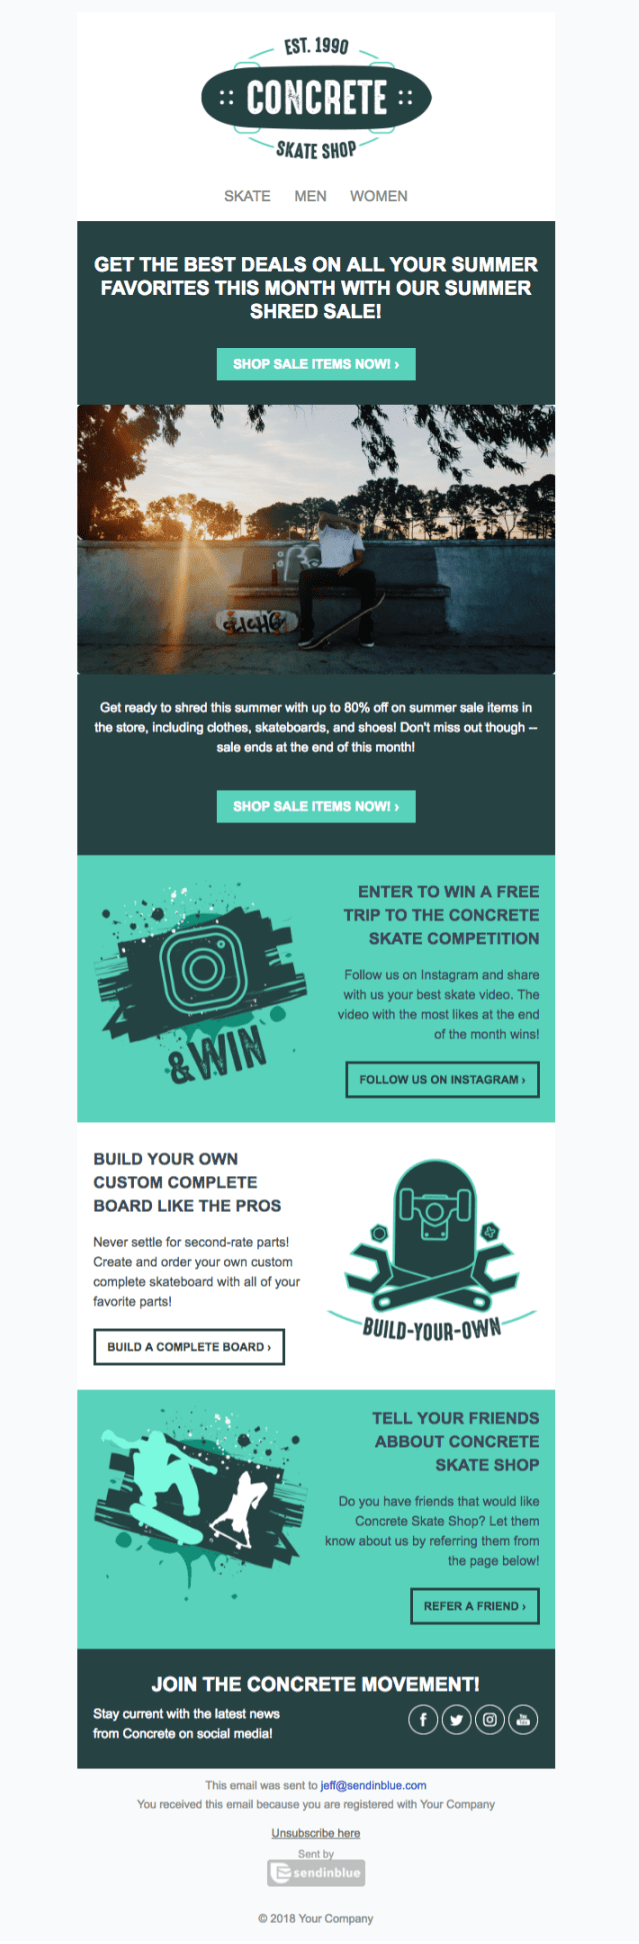 5 Free Html Newsletter Templates To Wow Your Audience Sendinblue